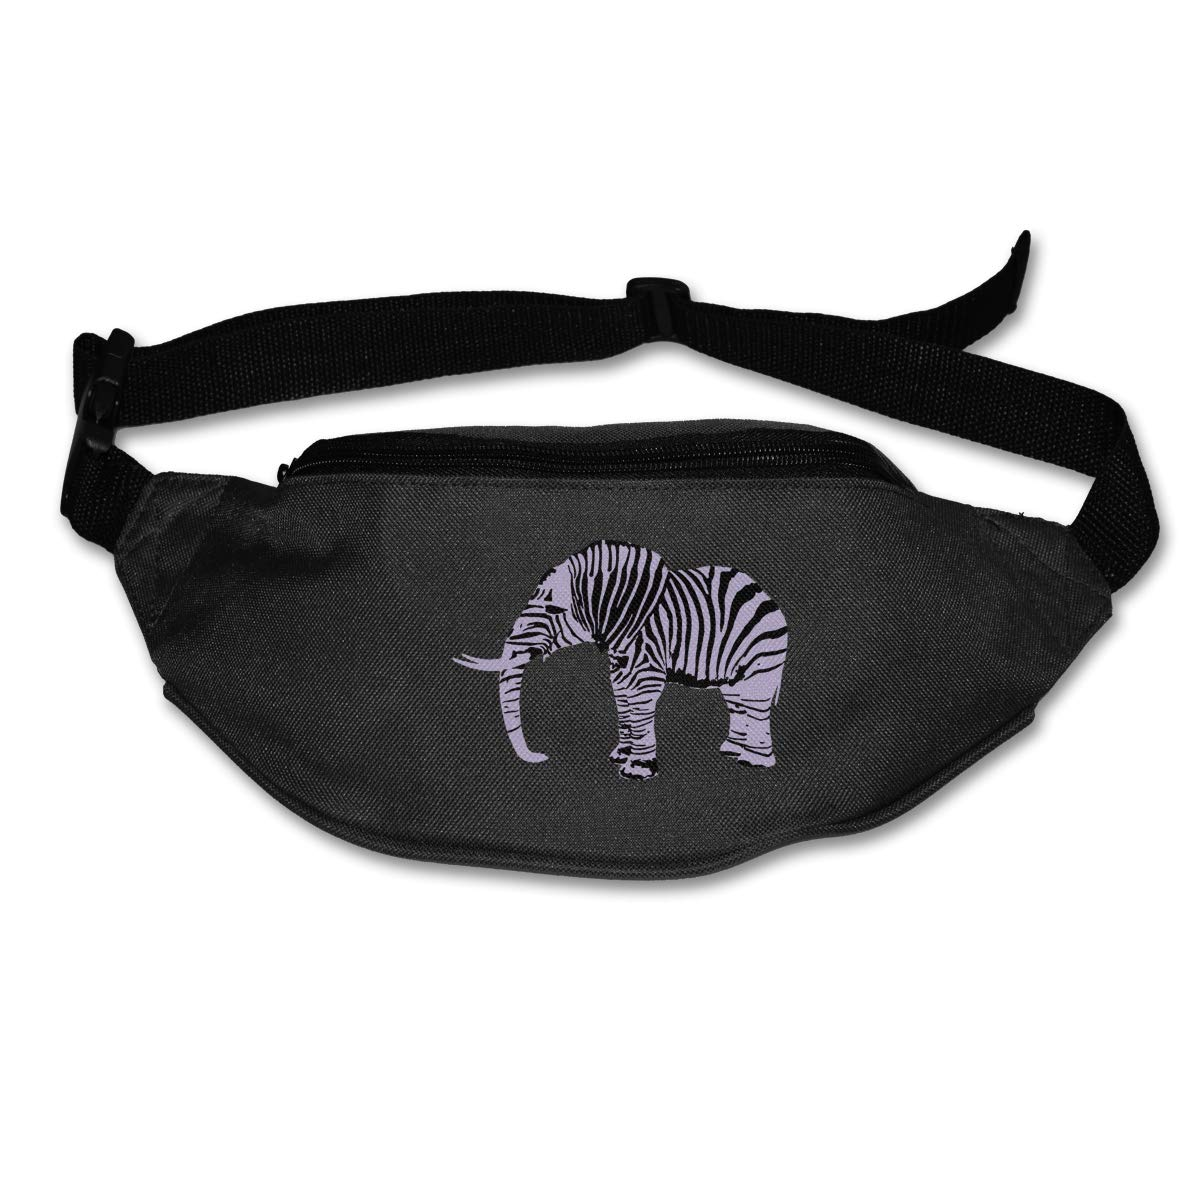 Elephant Zebra Sport Waist Packs Fanny Pack Adjustable For Run